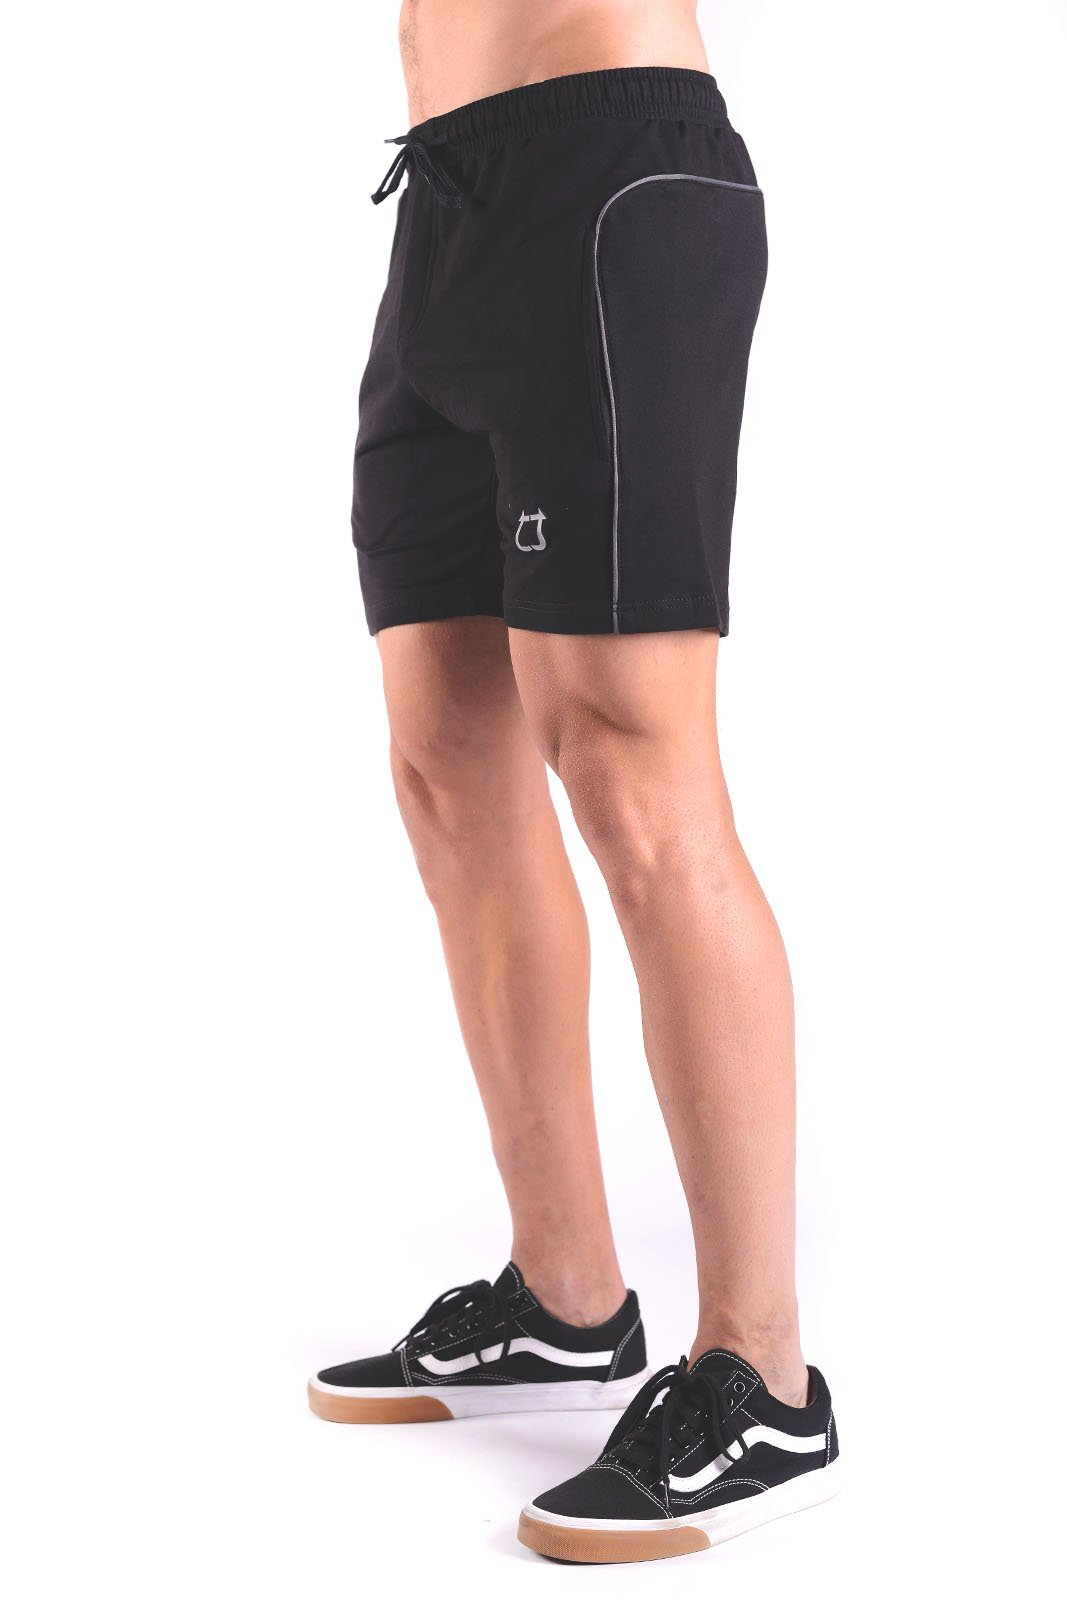 Rove Trim Sweat Shorts - Black